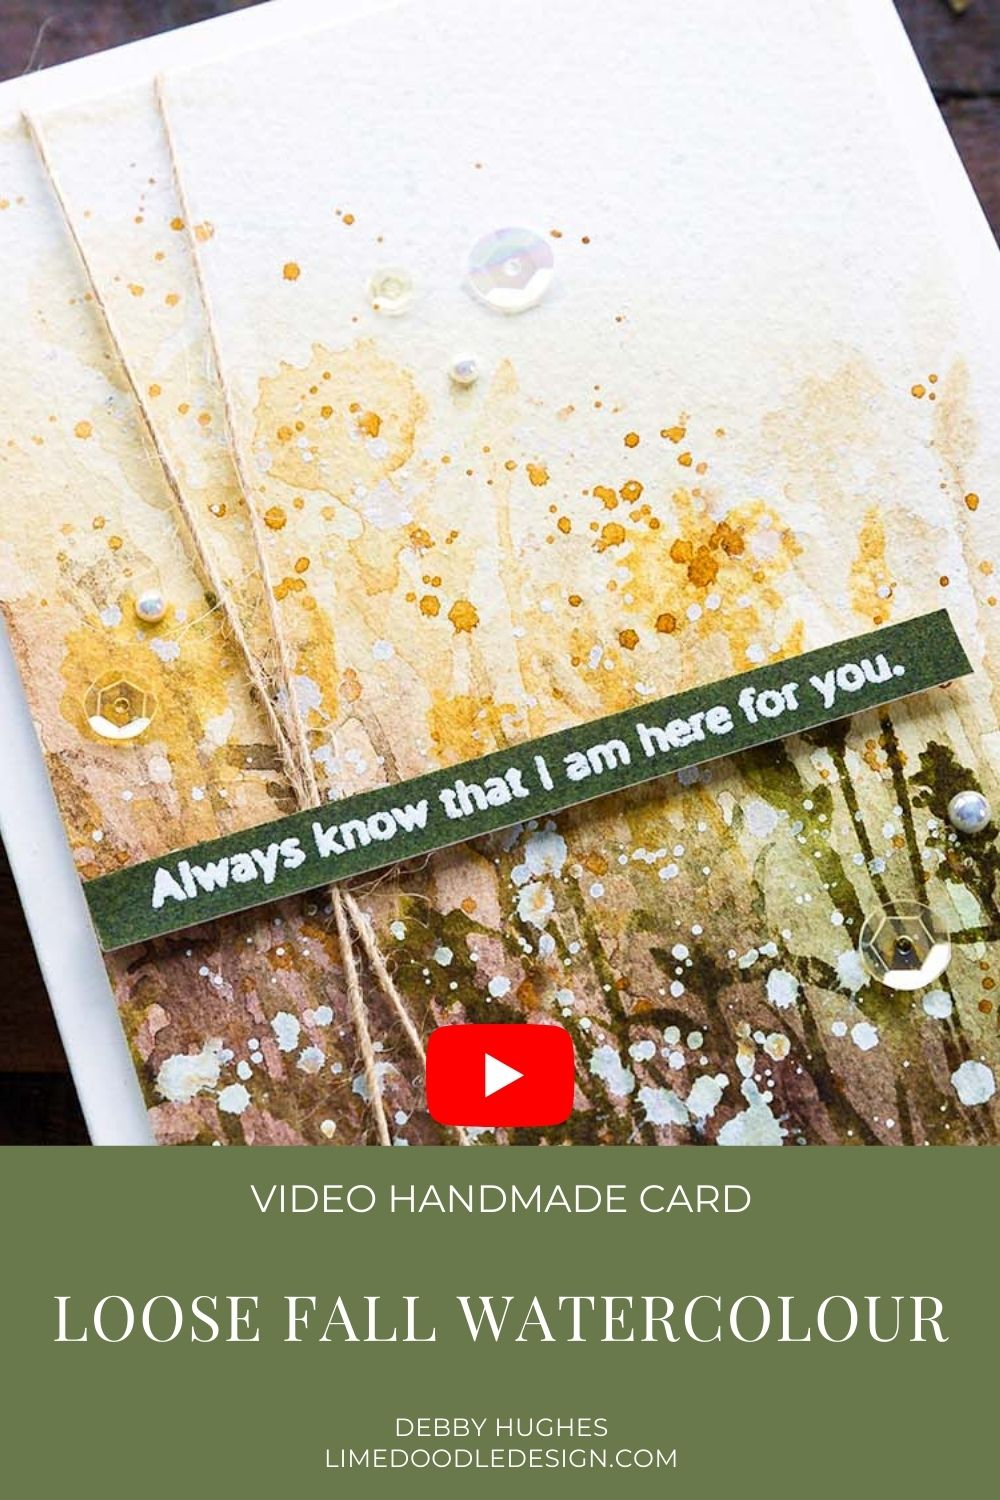 Video tutorial - loose fall watercolour handmade card by Debby Hughes using supplies from Simon Says Stamp #handmadecards #cardmaking #cardmakingideas #cardmakingtechniques  #cardmakingtutorials #handmadecardideas #czdesign #simonsaysstamp